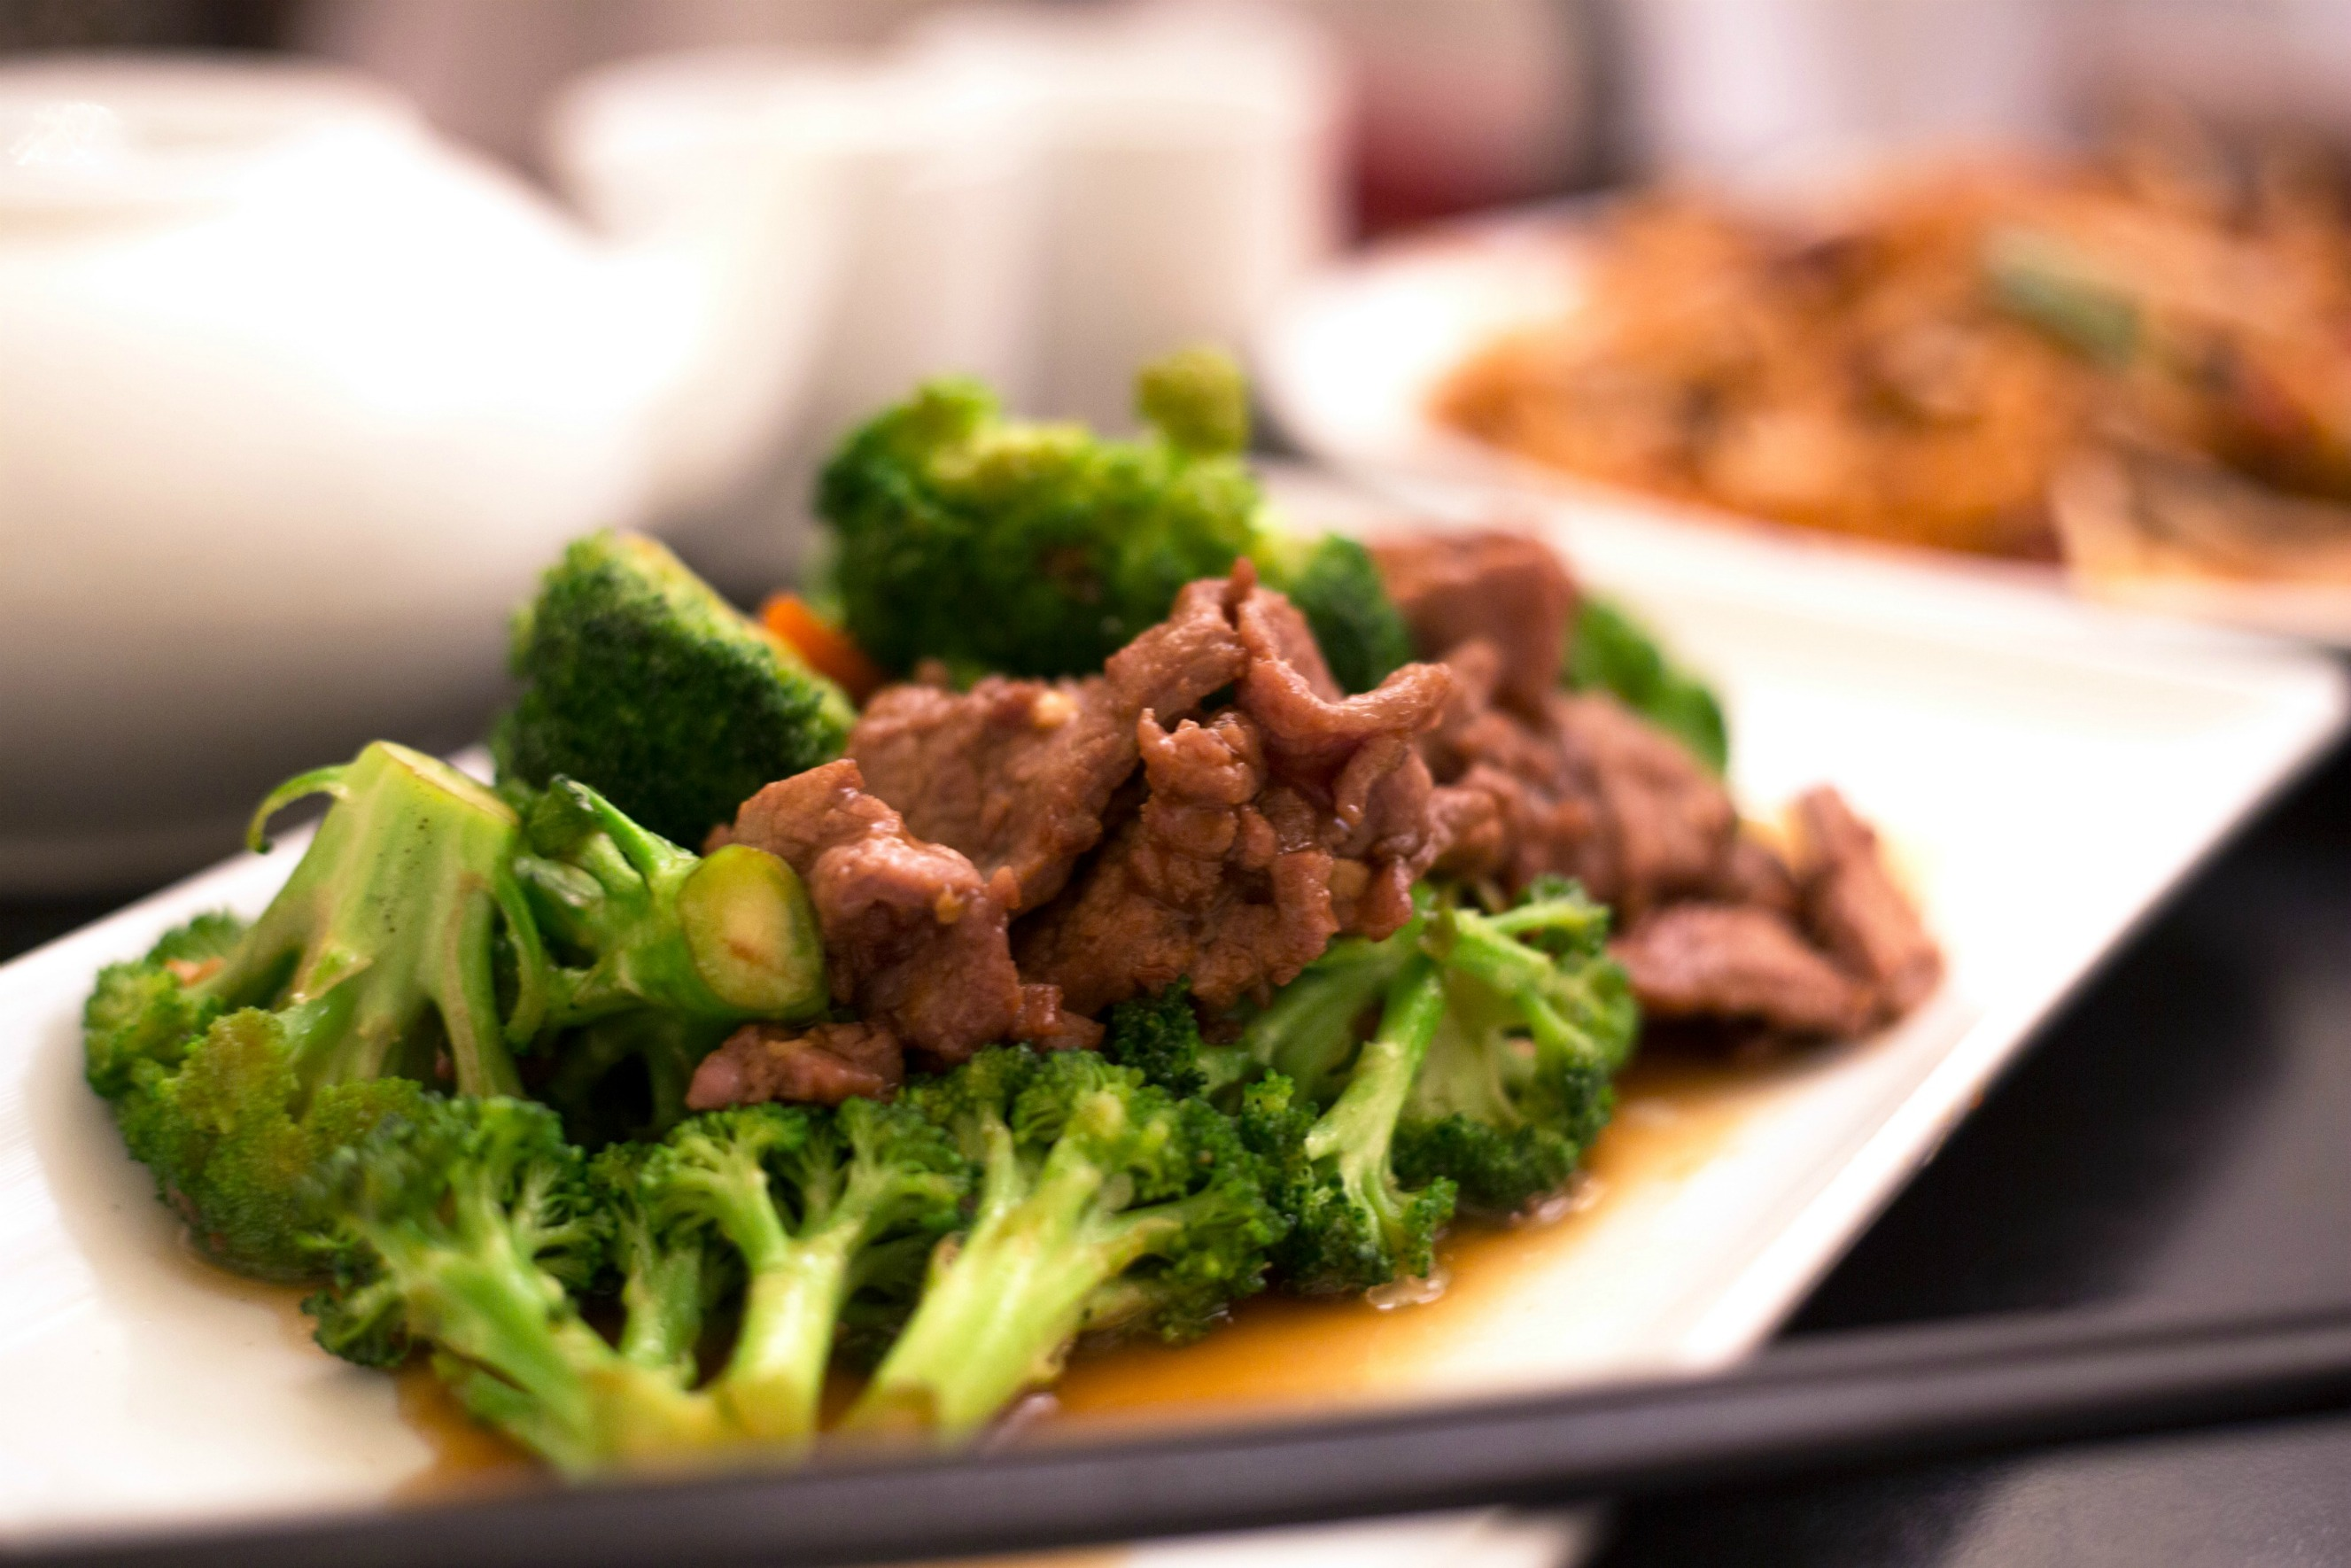 Broccoli and Beef for Schools